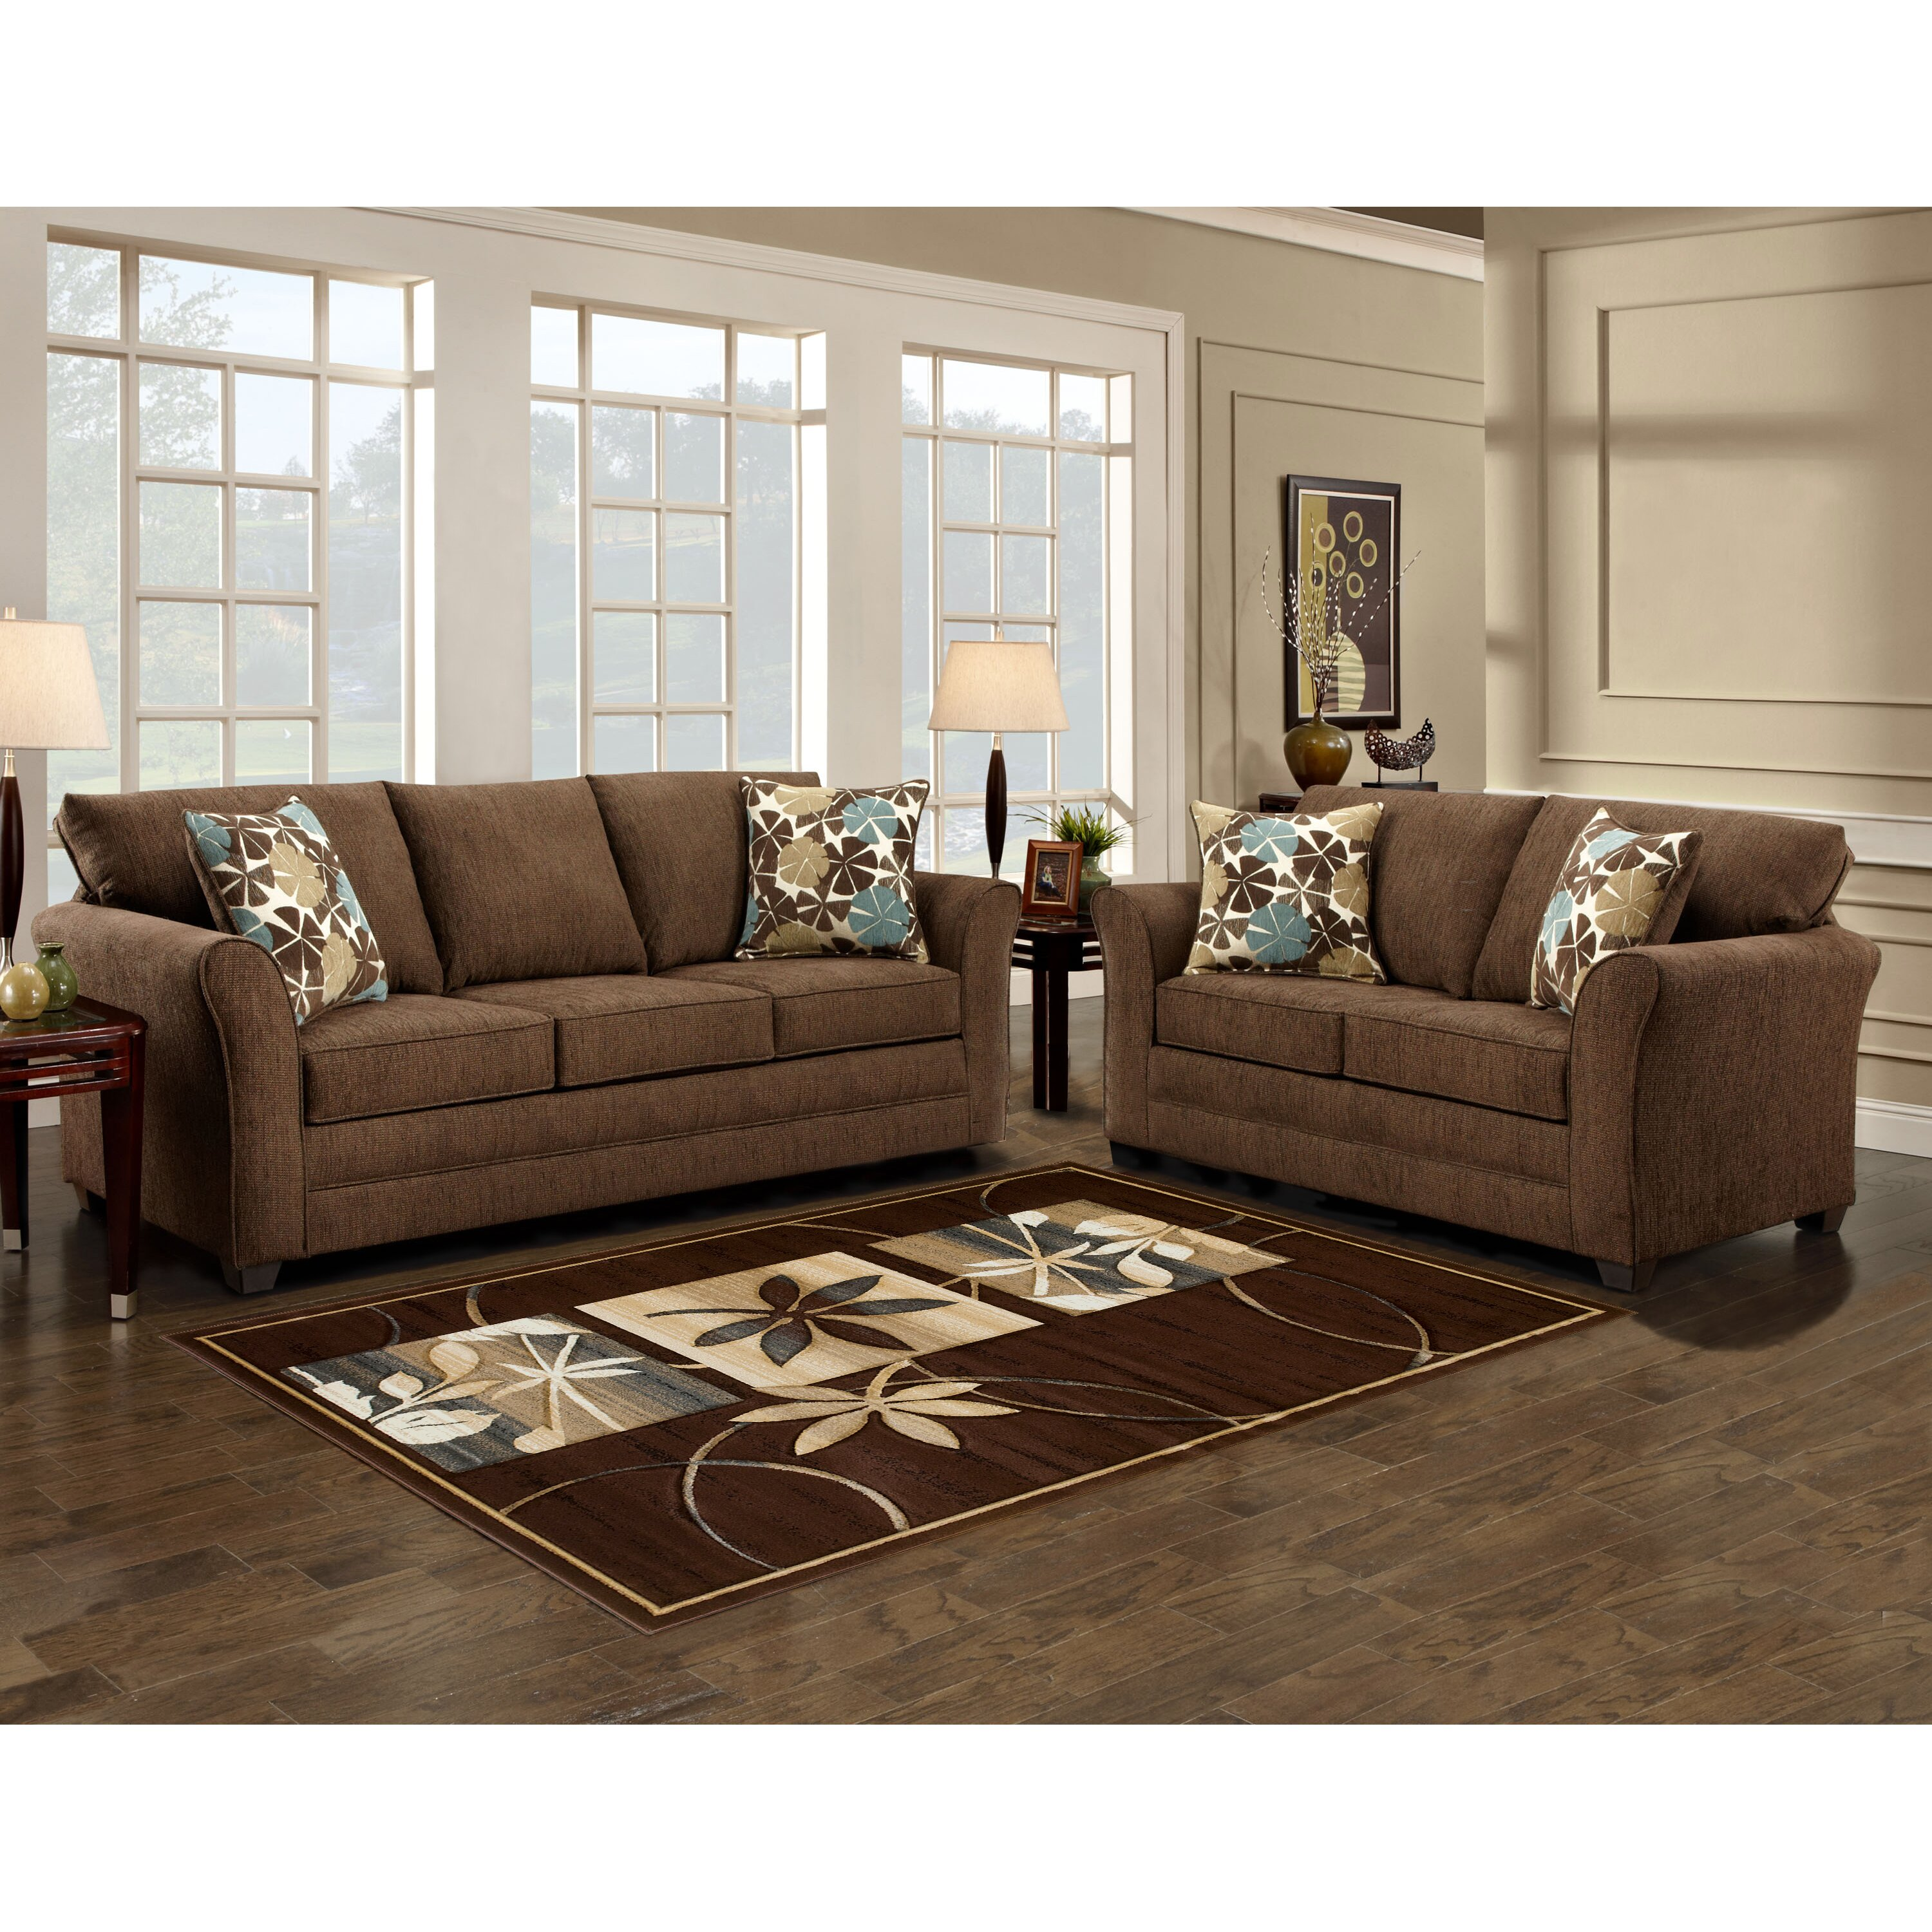 Wildon Home Brooklyn Living Room Collection Reviews